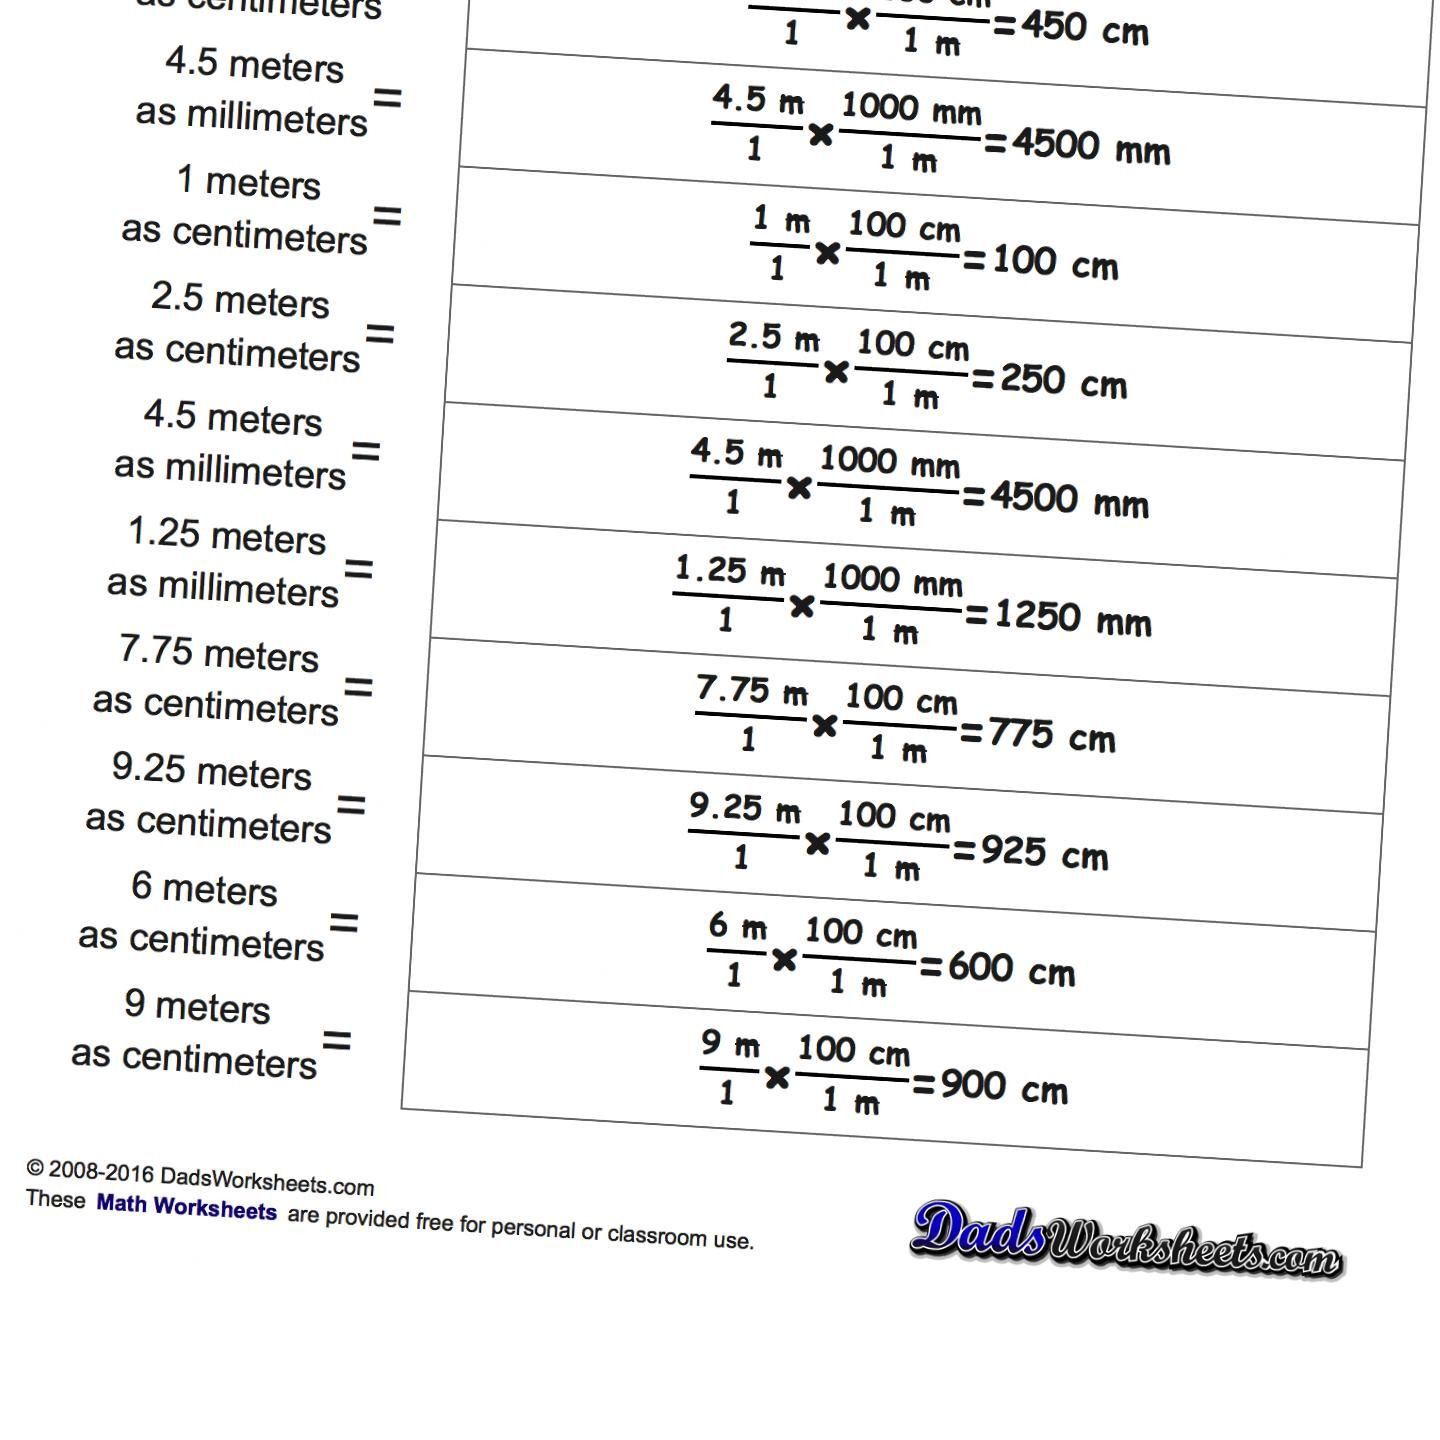 Worksheet Unit Conversions Worksheet Metric Si Unit